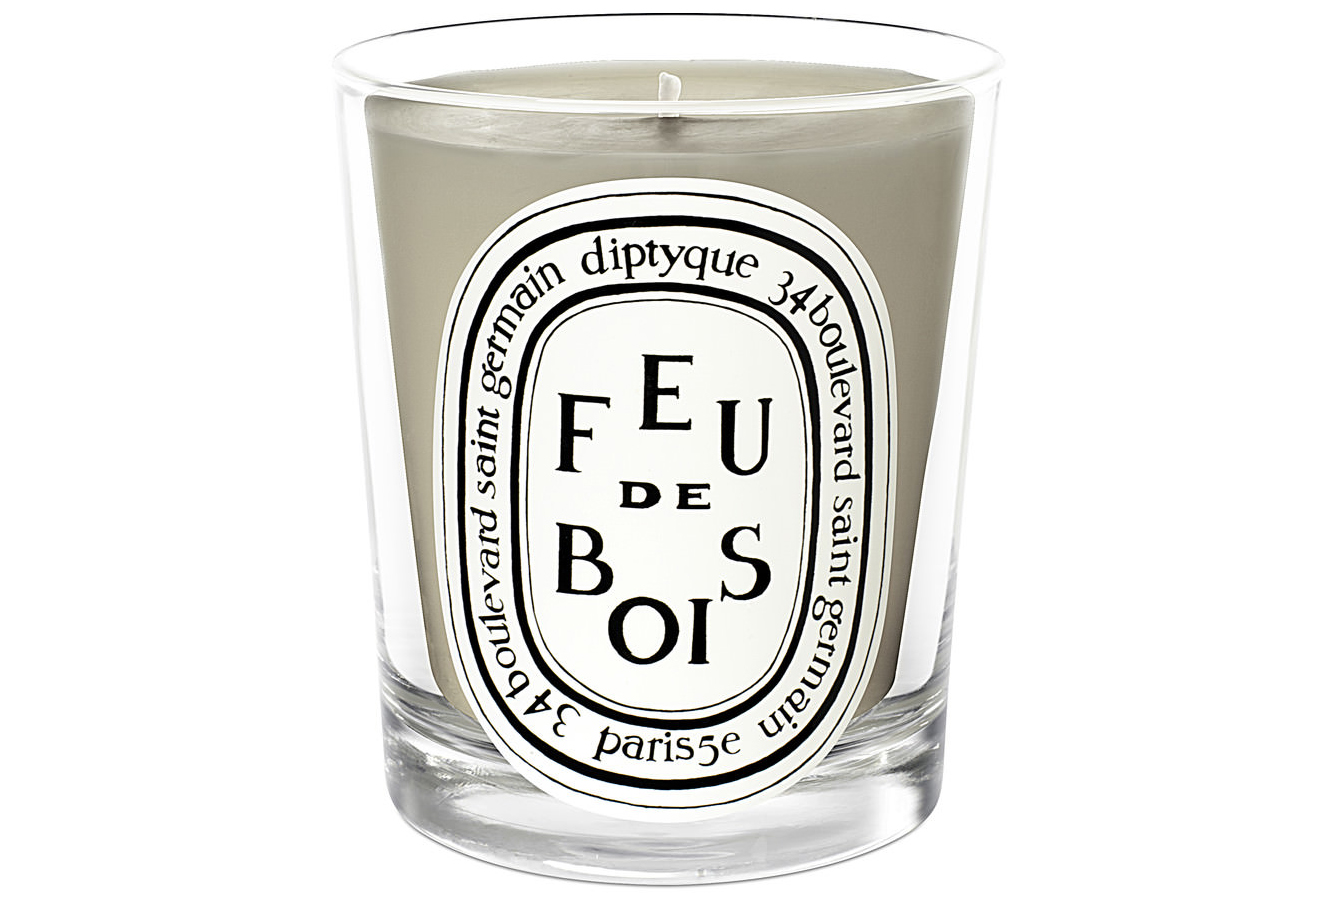 Splurge on a High-Quality Candle